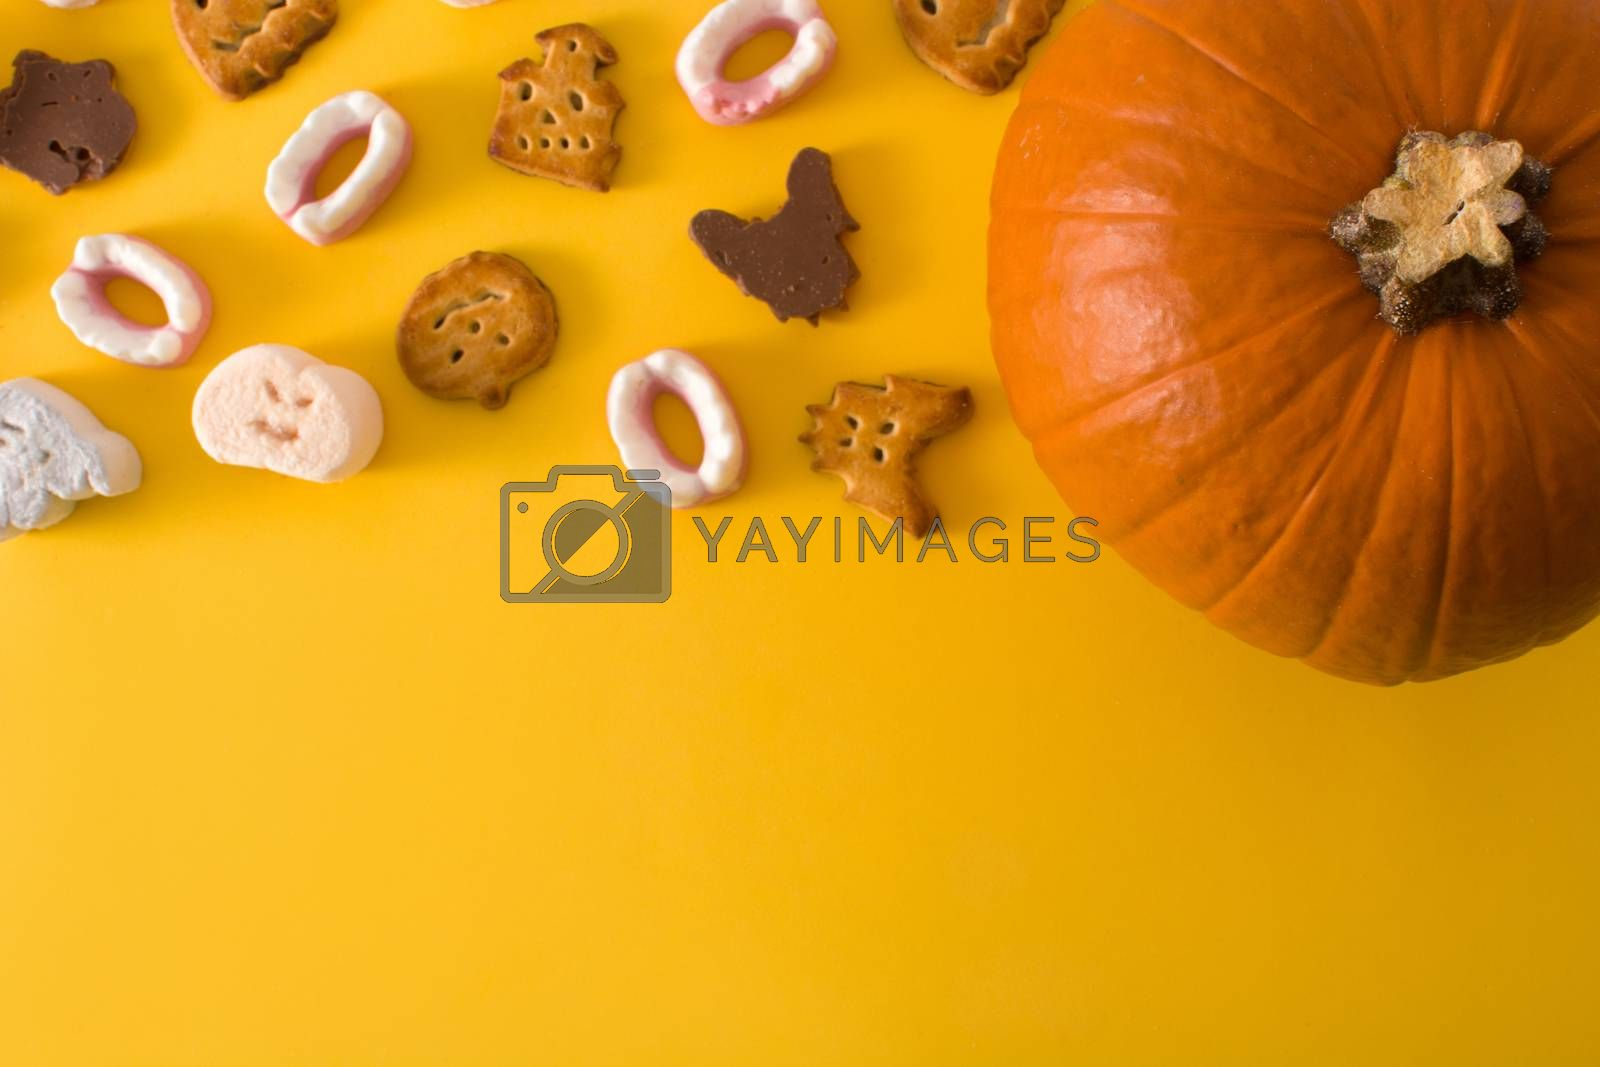 Halloween cookies and Halloween pumpkin on yellow background.